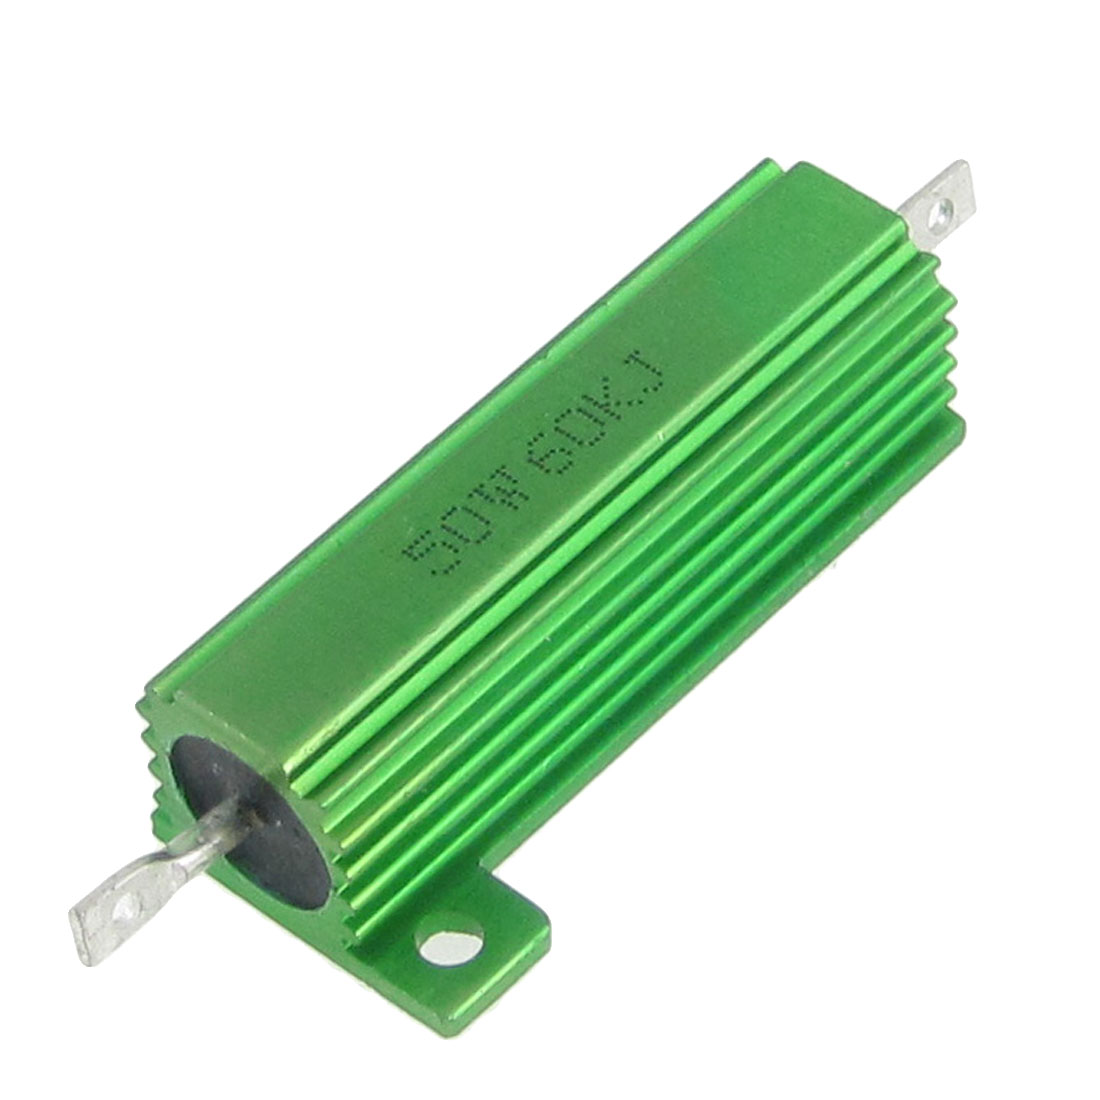 2 Pcs Green Aluminum Housed Screw Tabs Mounted 50W 5% 60K Ohm Resistors